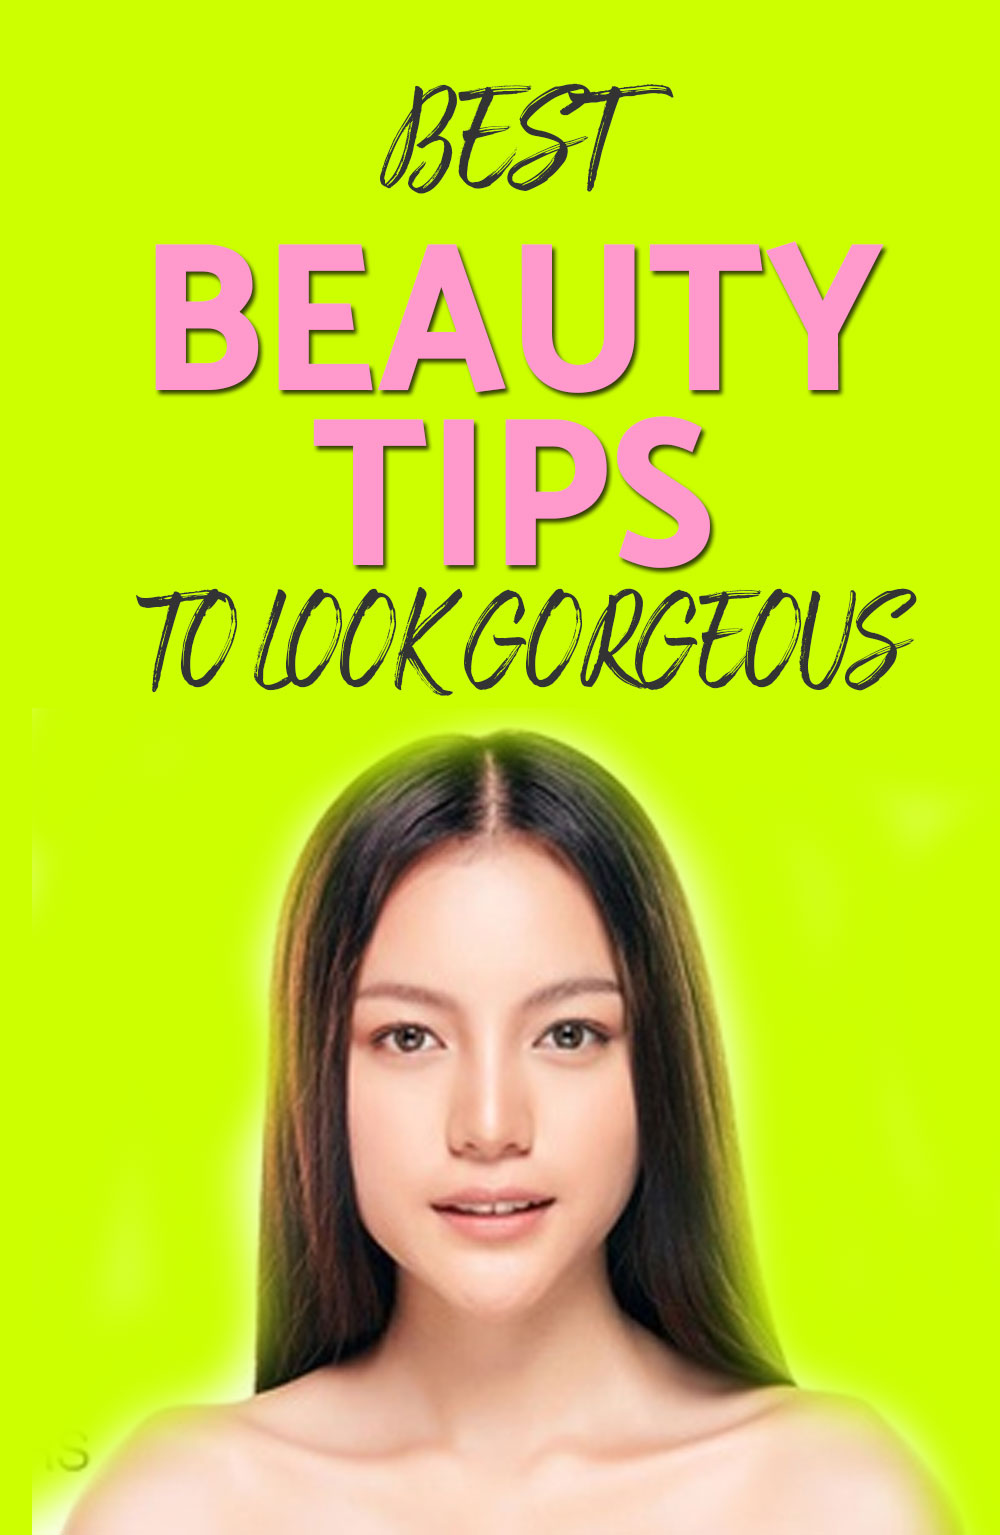 BEAUTY TIPS TO LOOK GORGEOUS